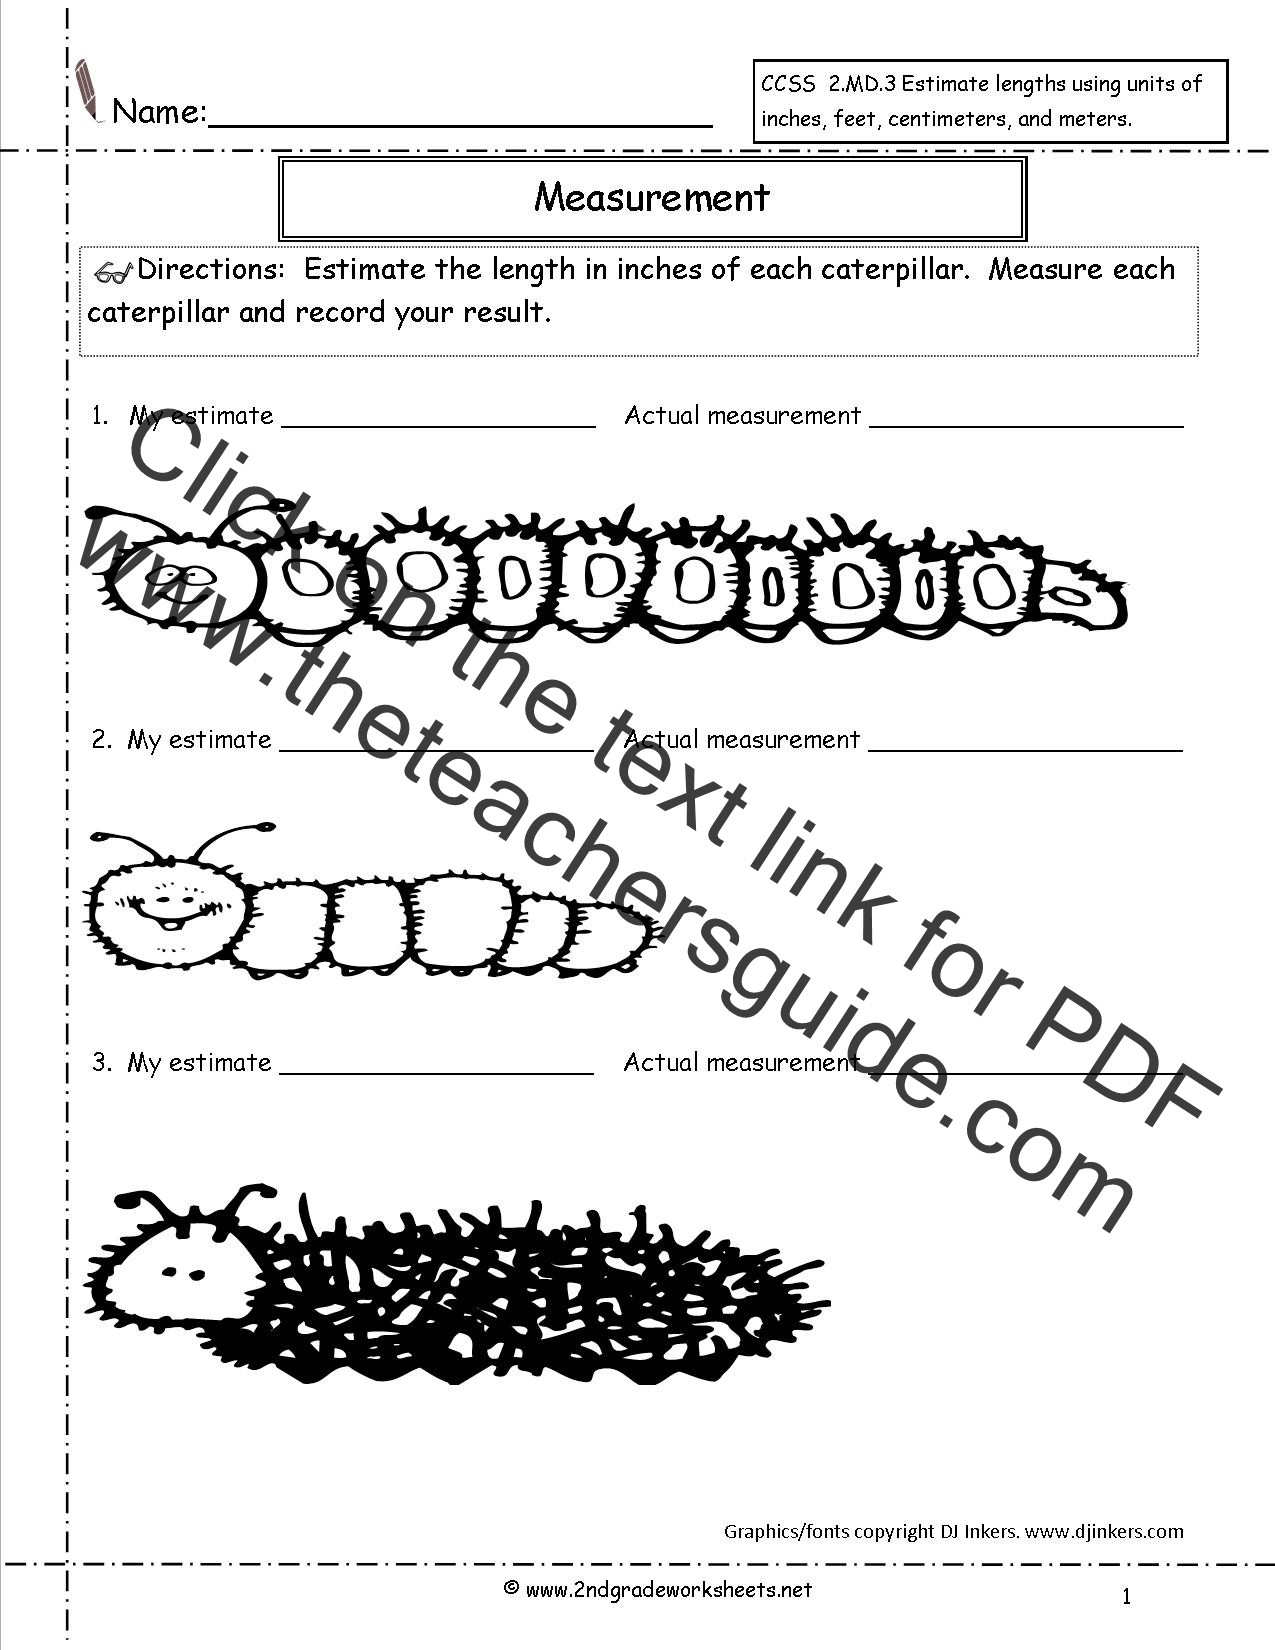 2nd Grade Measurement Worksheet Ccss 2 Md 3 Worksheets Estimating and Measuring Lengths